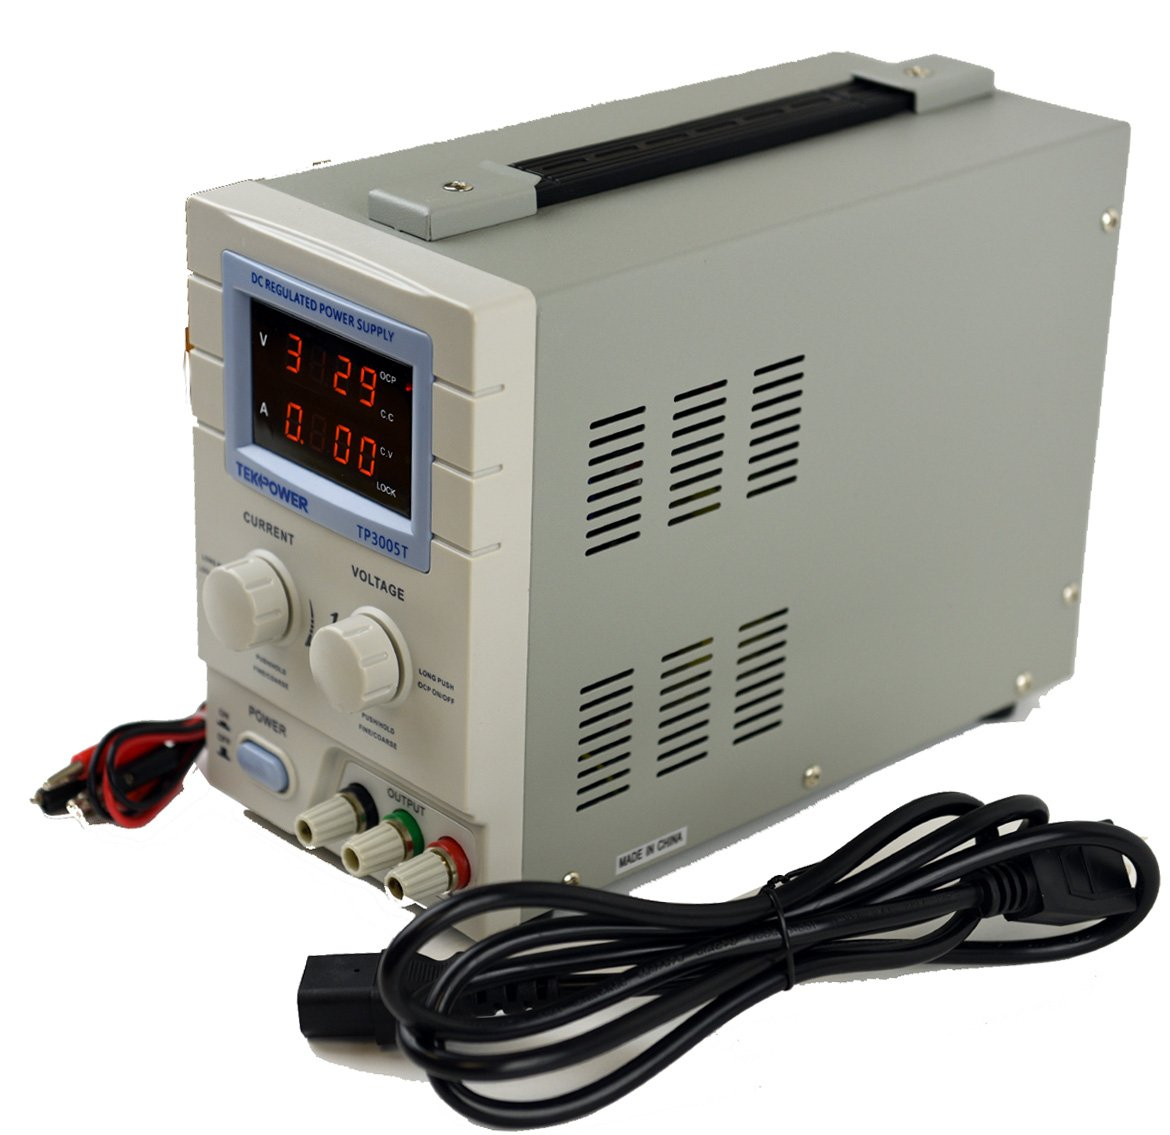 Tekpower Tp3005t Variable Linear Dc Power Supply 0 30v 5a With Symmetrical Regulated And To 2a Alligator Test Leads Industrial Scientific